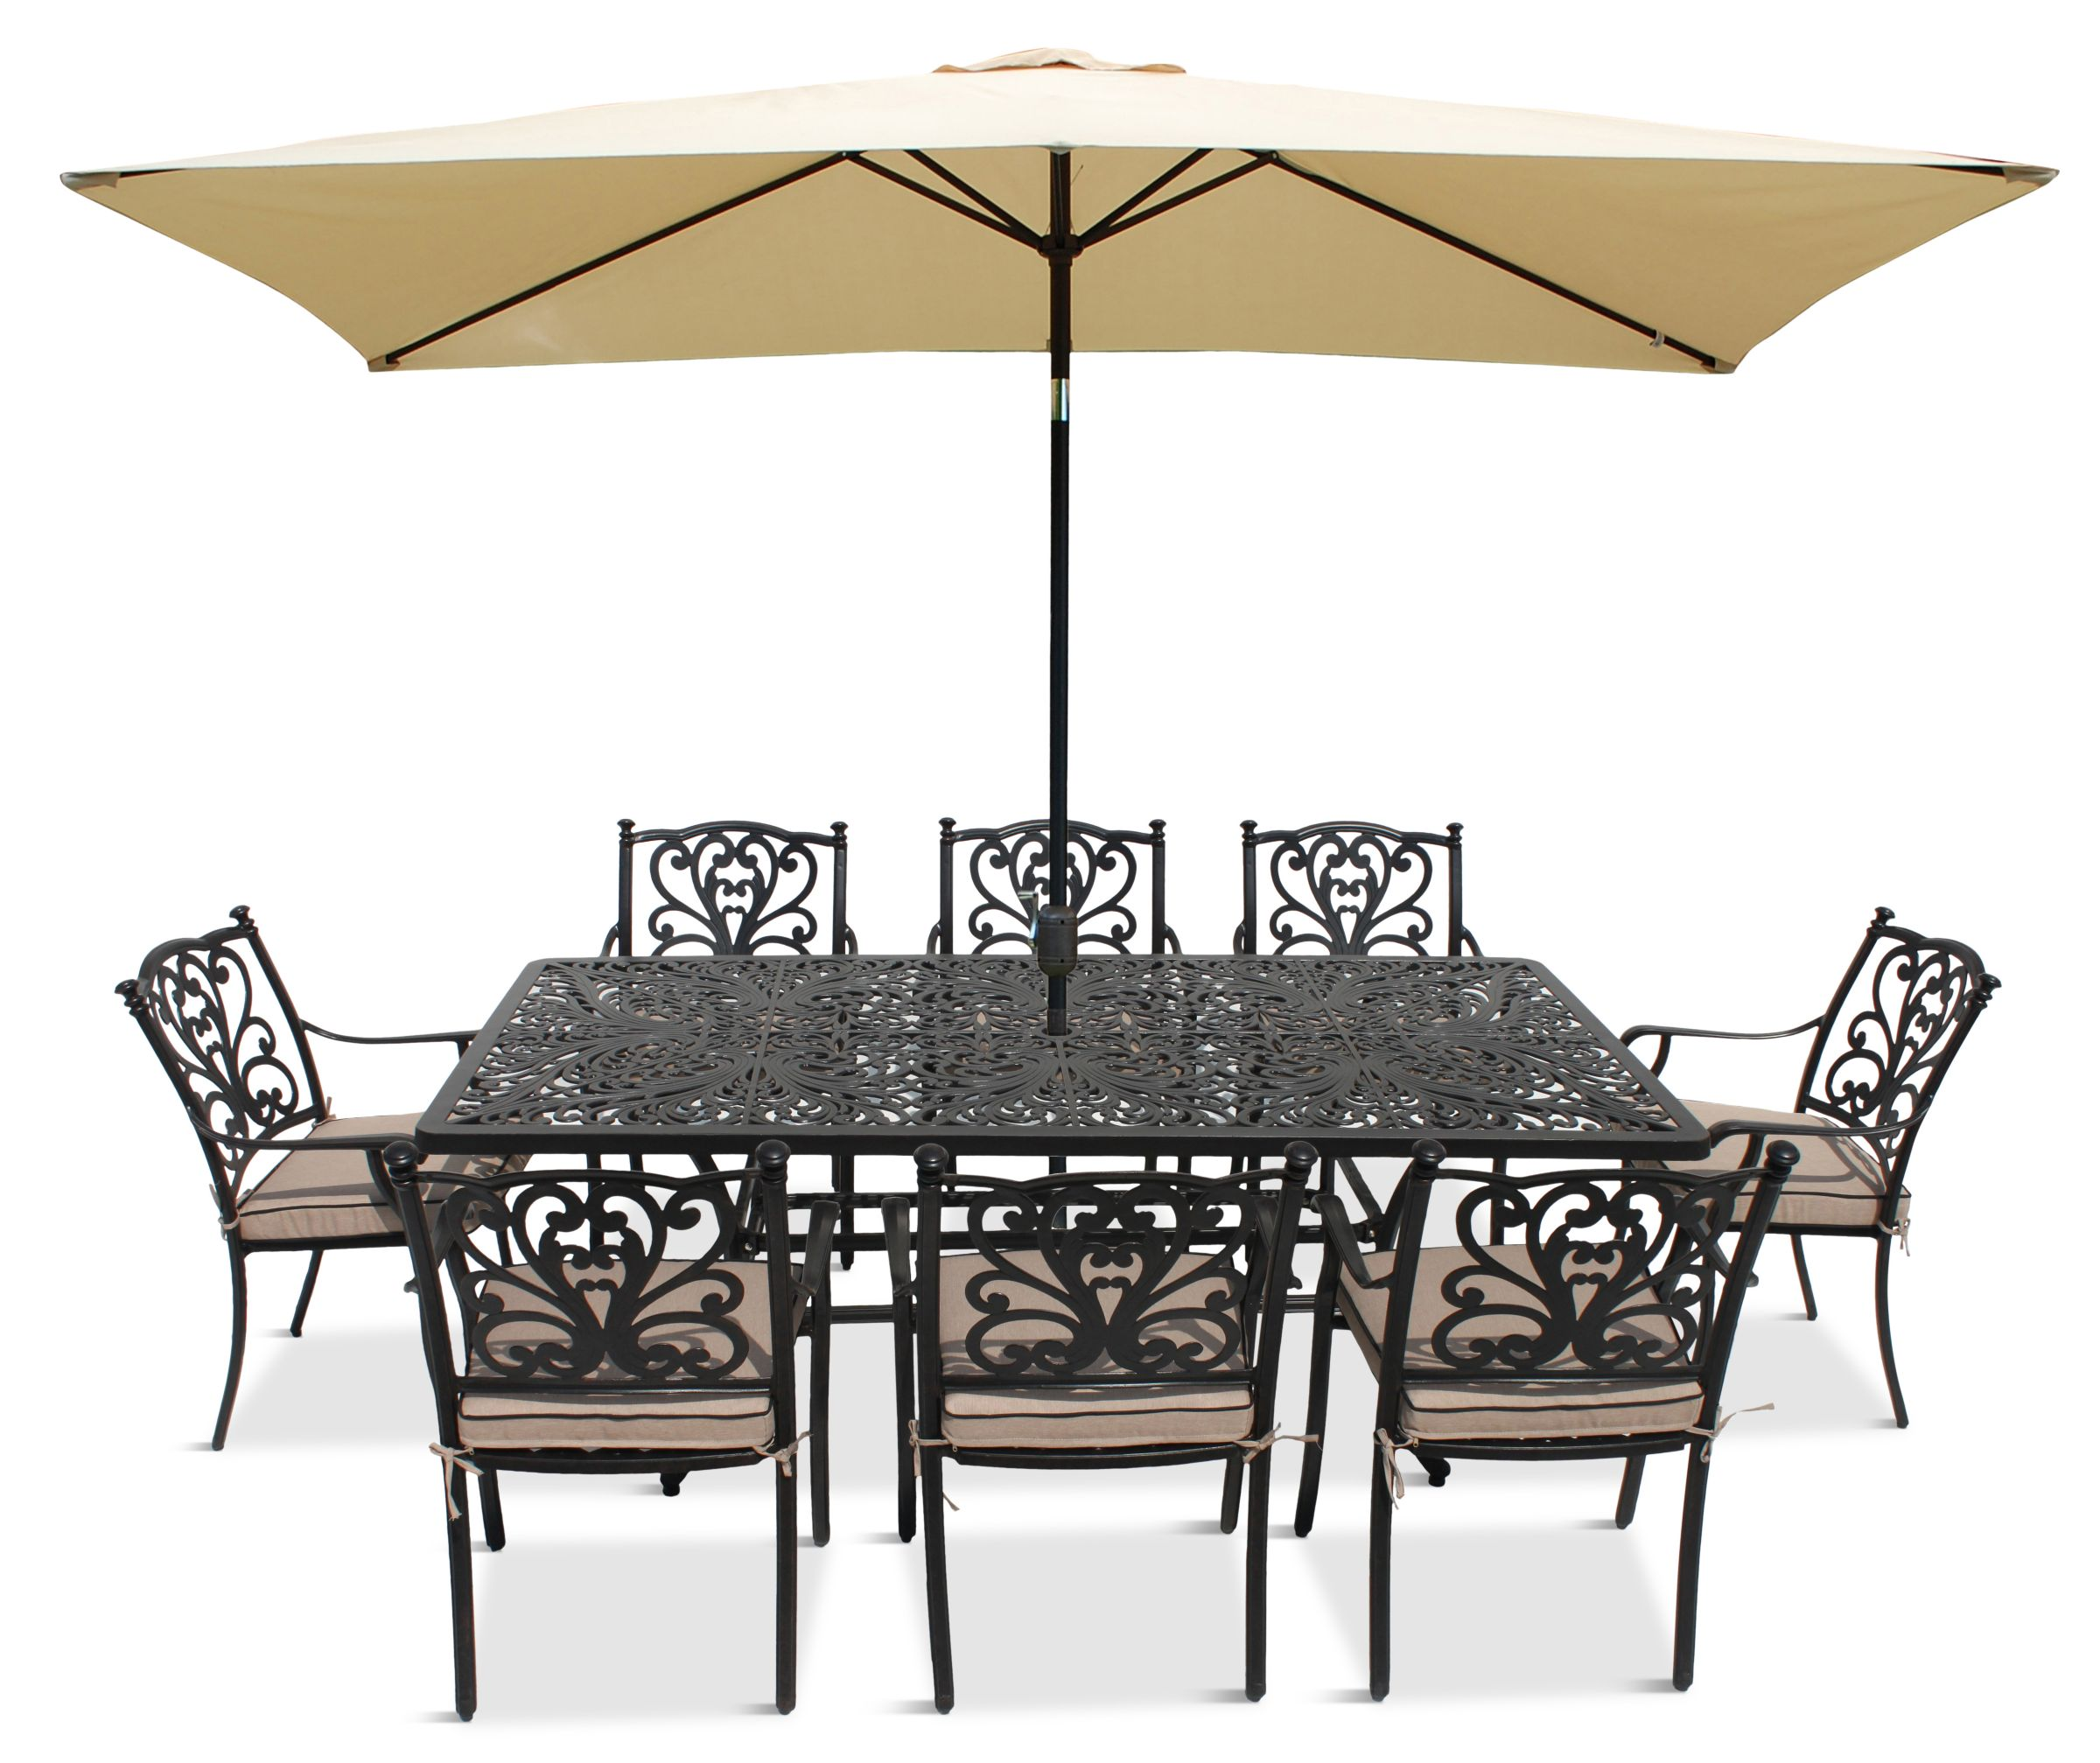 LG Outdoor LG Outdoor Devon 8 Seater Garden Dining Table and Chairs Set with Parasol, Bronze